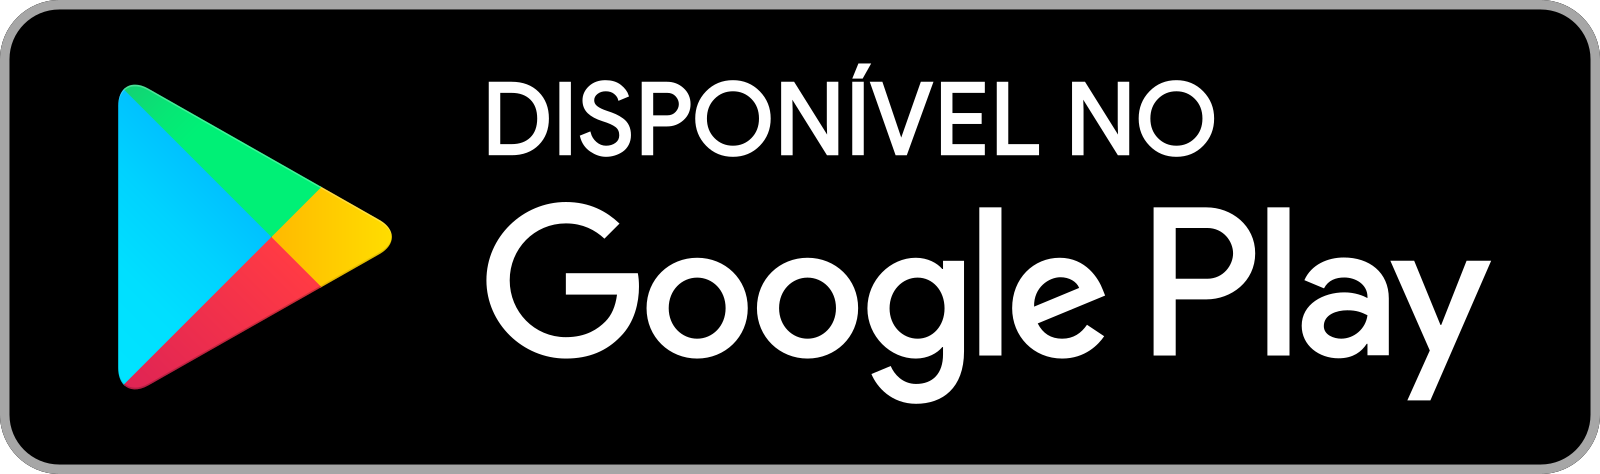 disponivel-google-play-badge-2